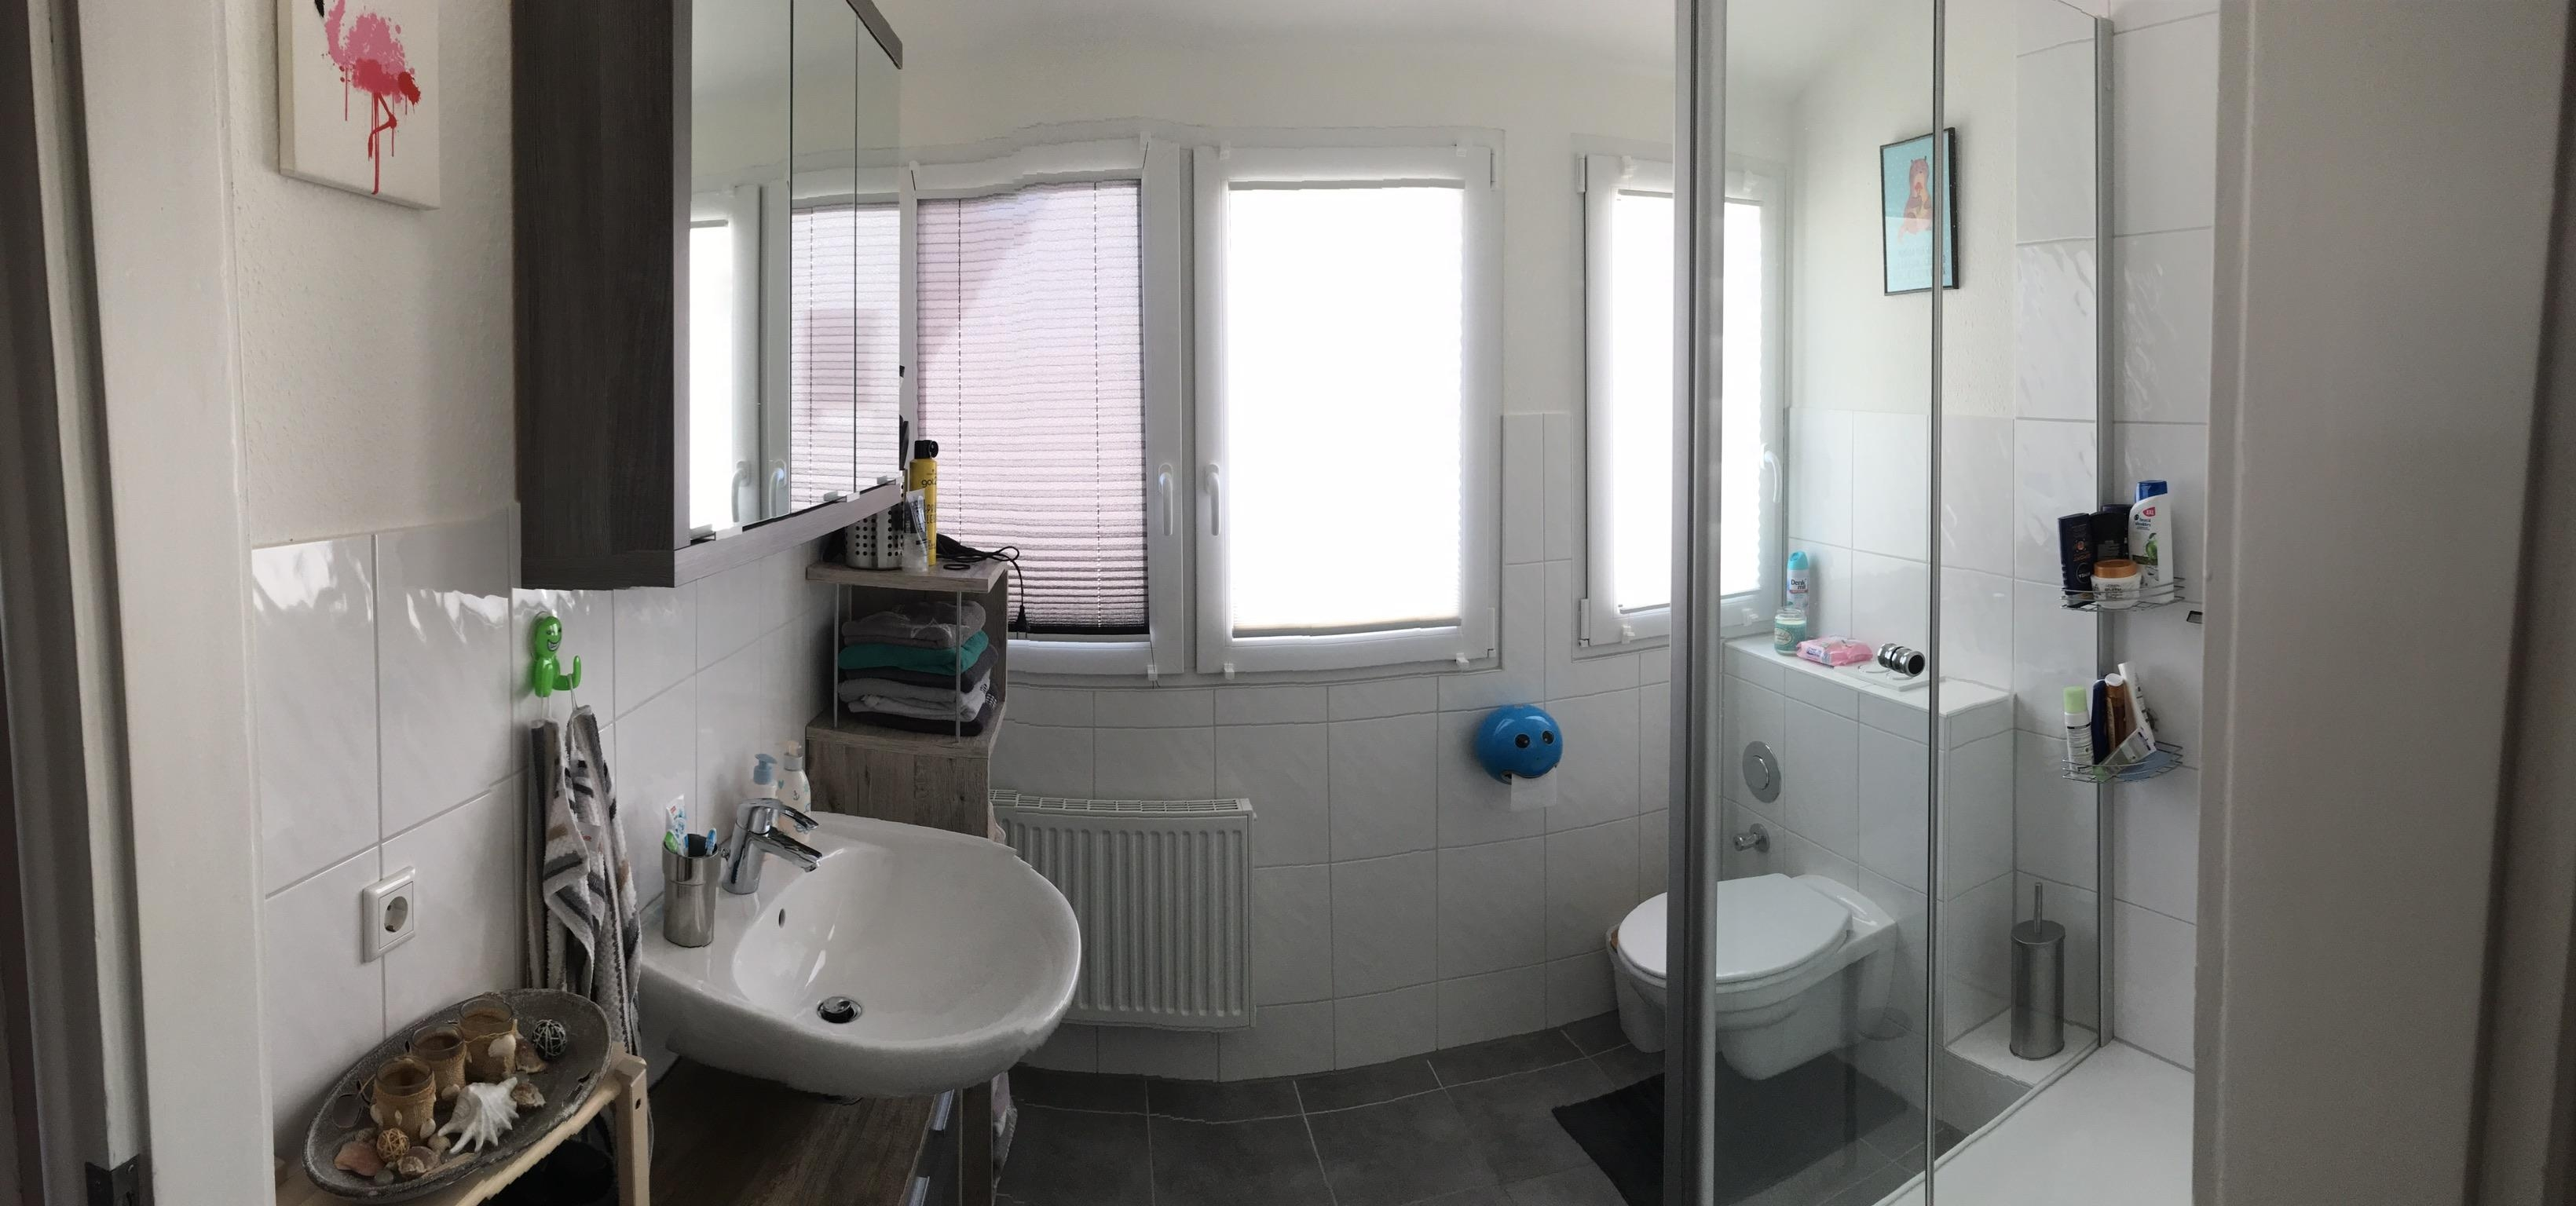 Badpanorama  badezimmer details smile seeside smile  c0bd4924 ce60 4f89 805a 0ebb46222162